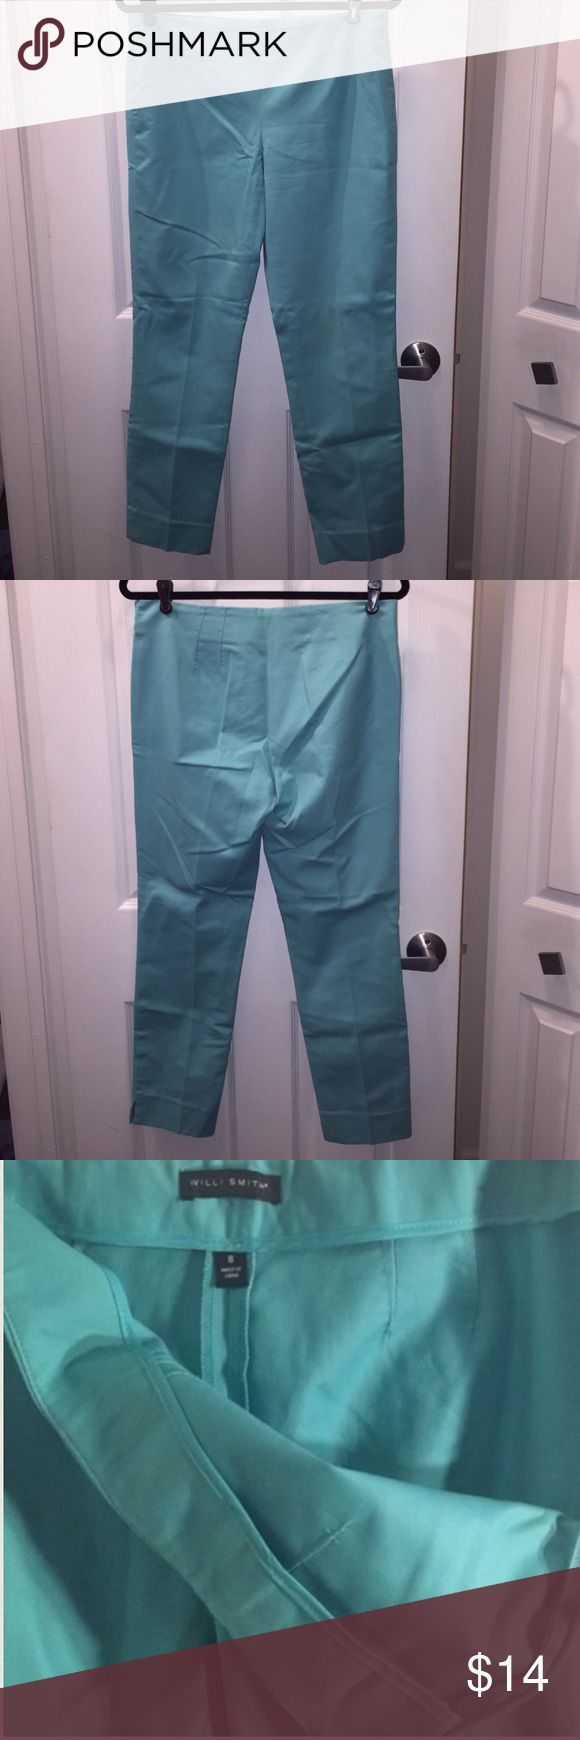 WILLI SMITH Size 8 Teal Pants WILLI SMITH Size 8 Teal Pants.  Measures approximately 27 to 28. Side zip. Slit at bottom ankle. Willi Smith Pants